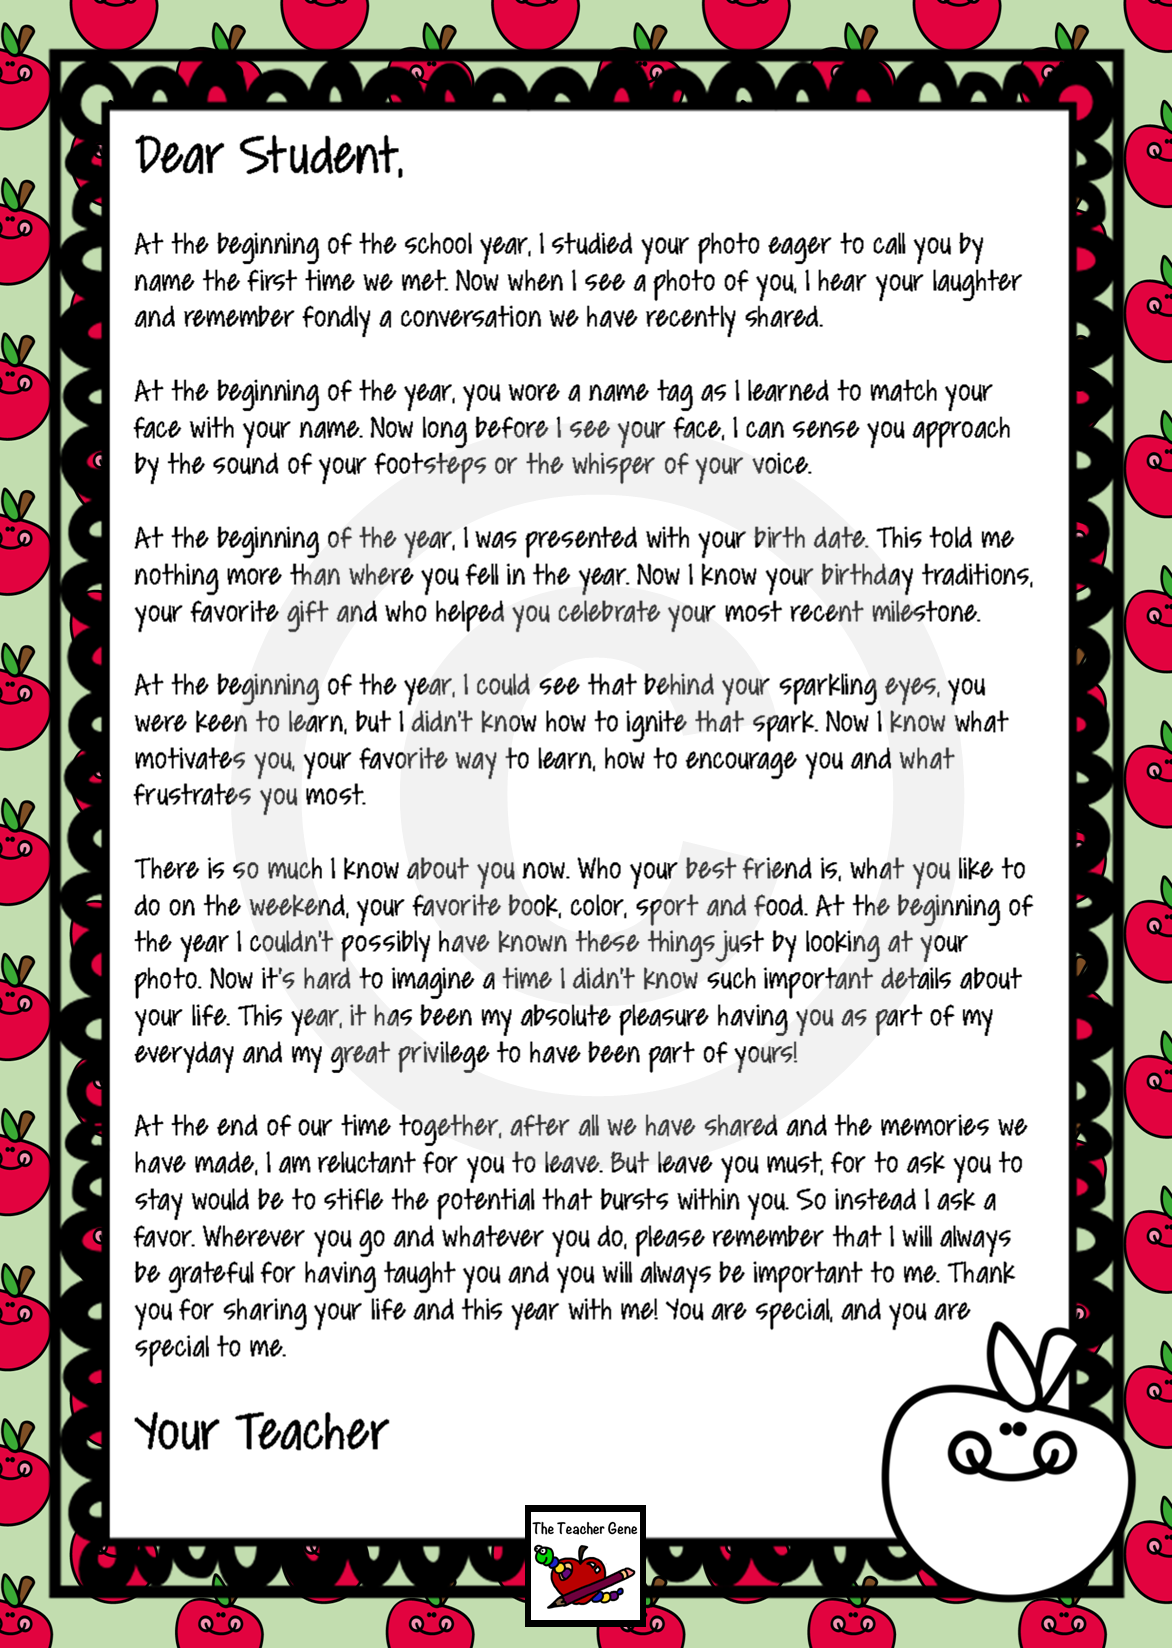 personalized end of year letter to student from teacher such a lovely letter with one paragraph switched out to create 16 extra versions for that